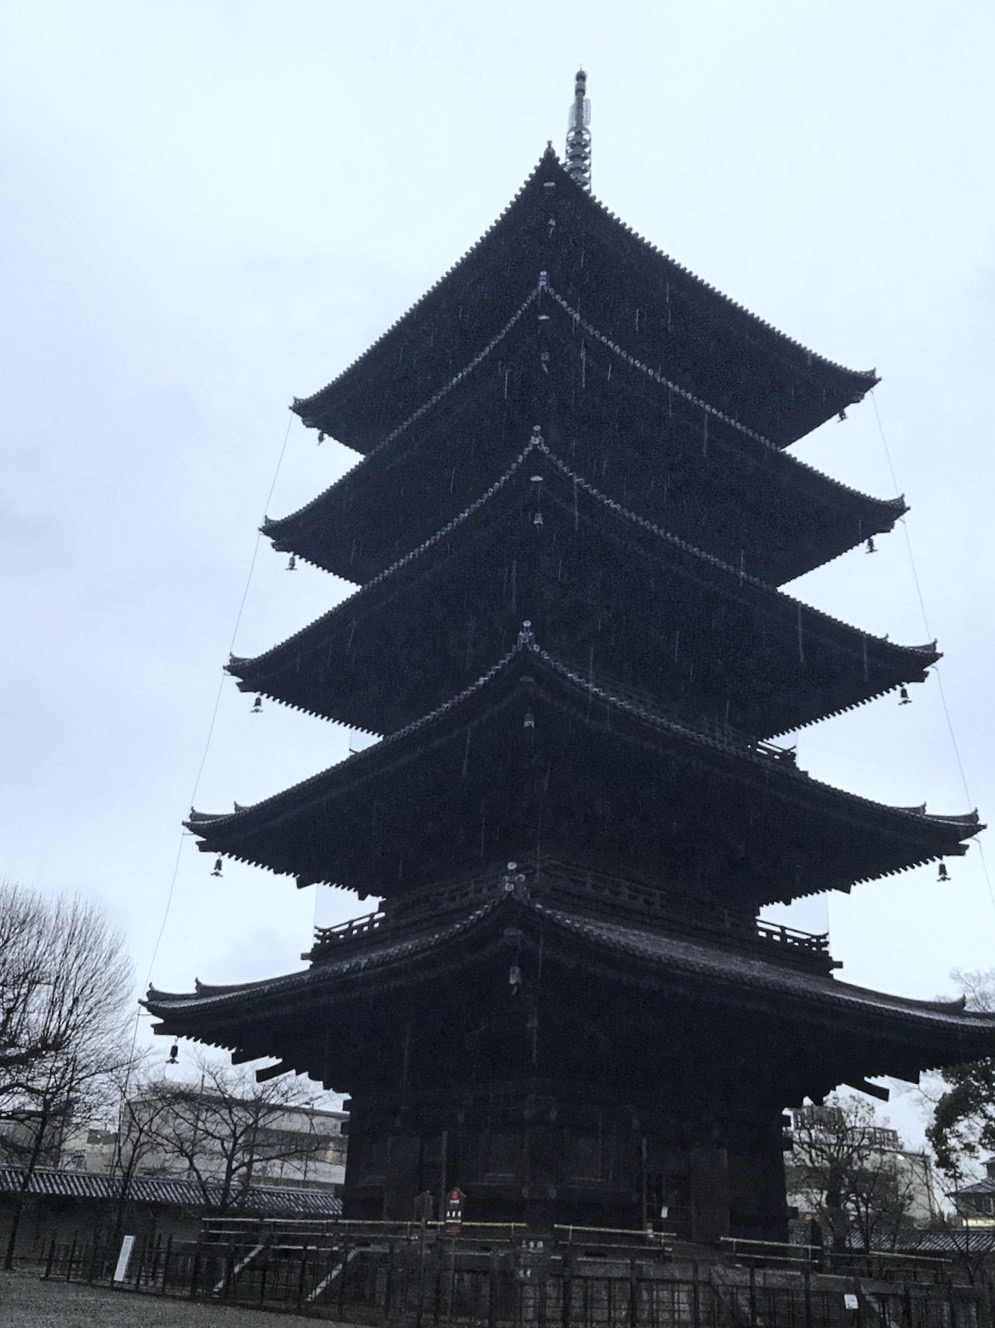 Toji Temple's five-storied pagoda